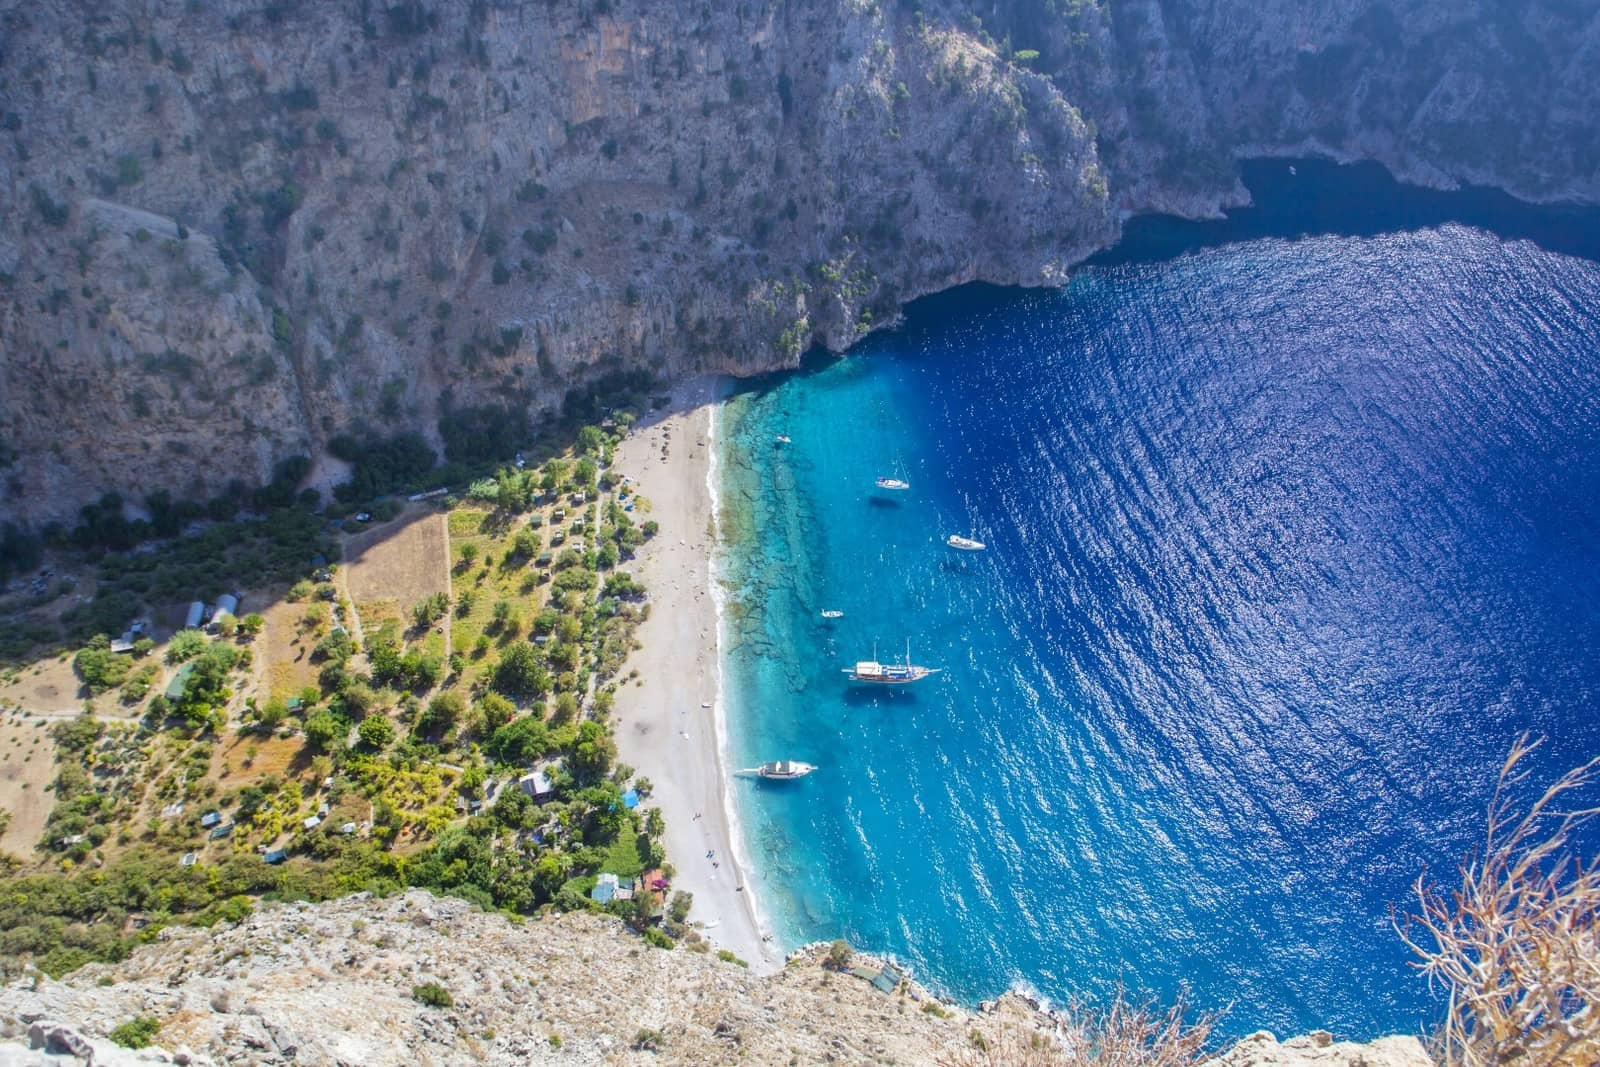 Sailing Turkey - free yachting and charter guide to sail the Turkish